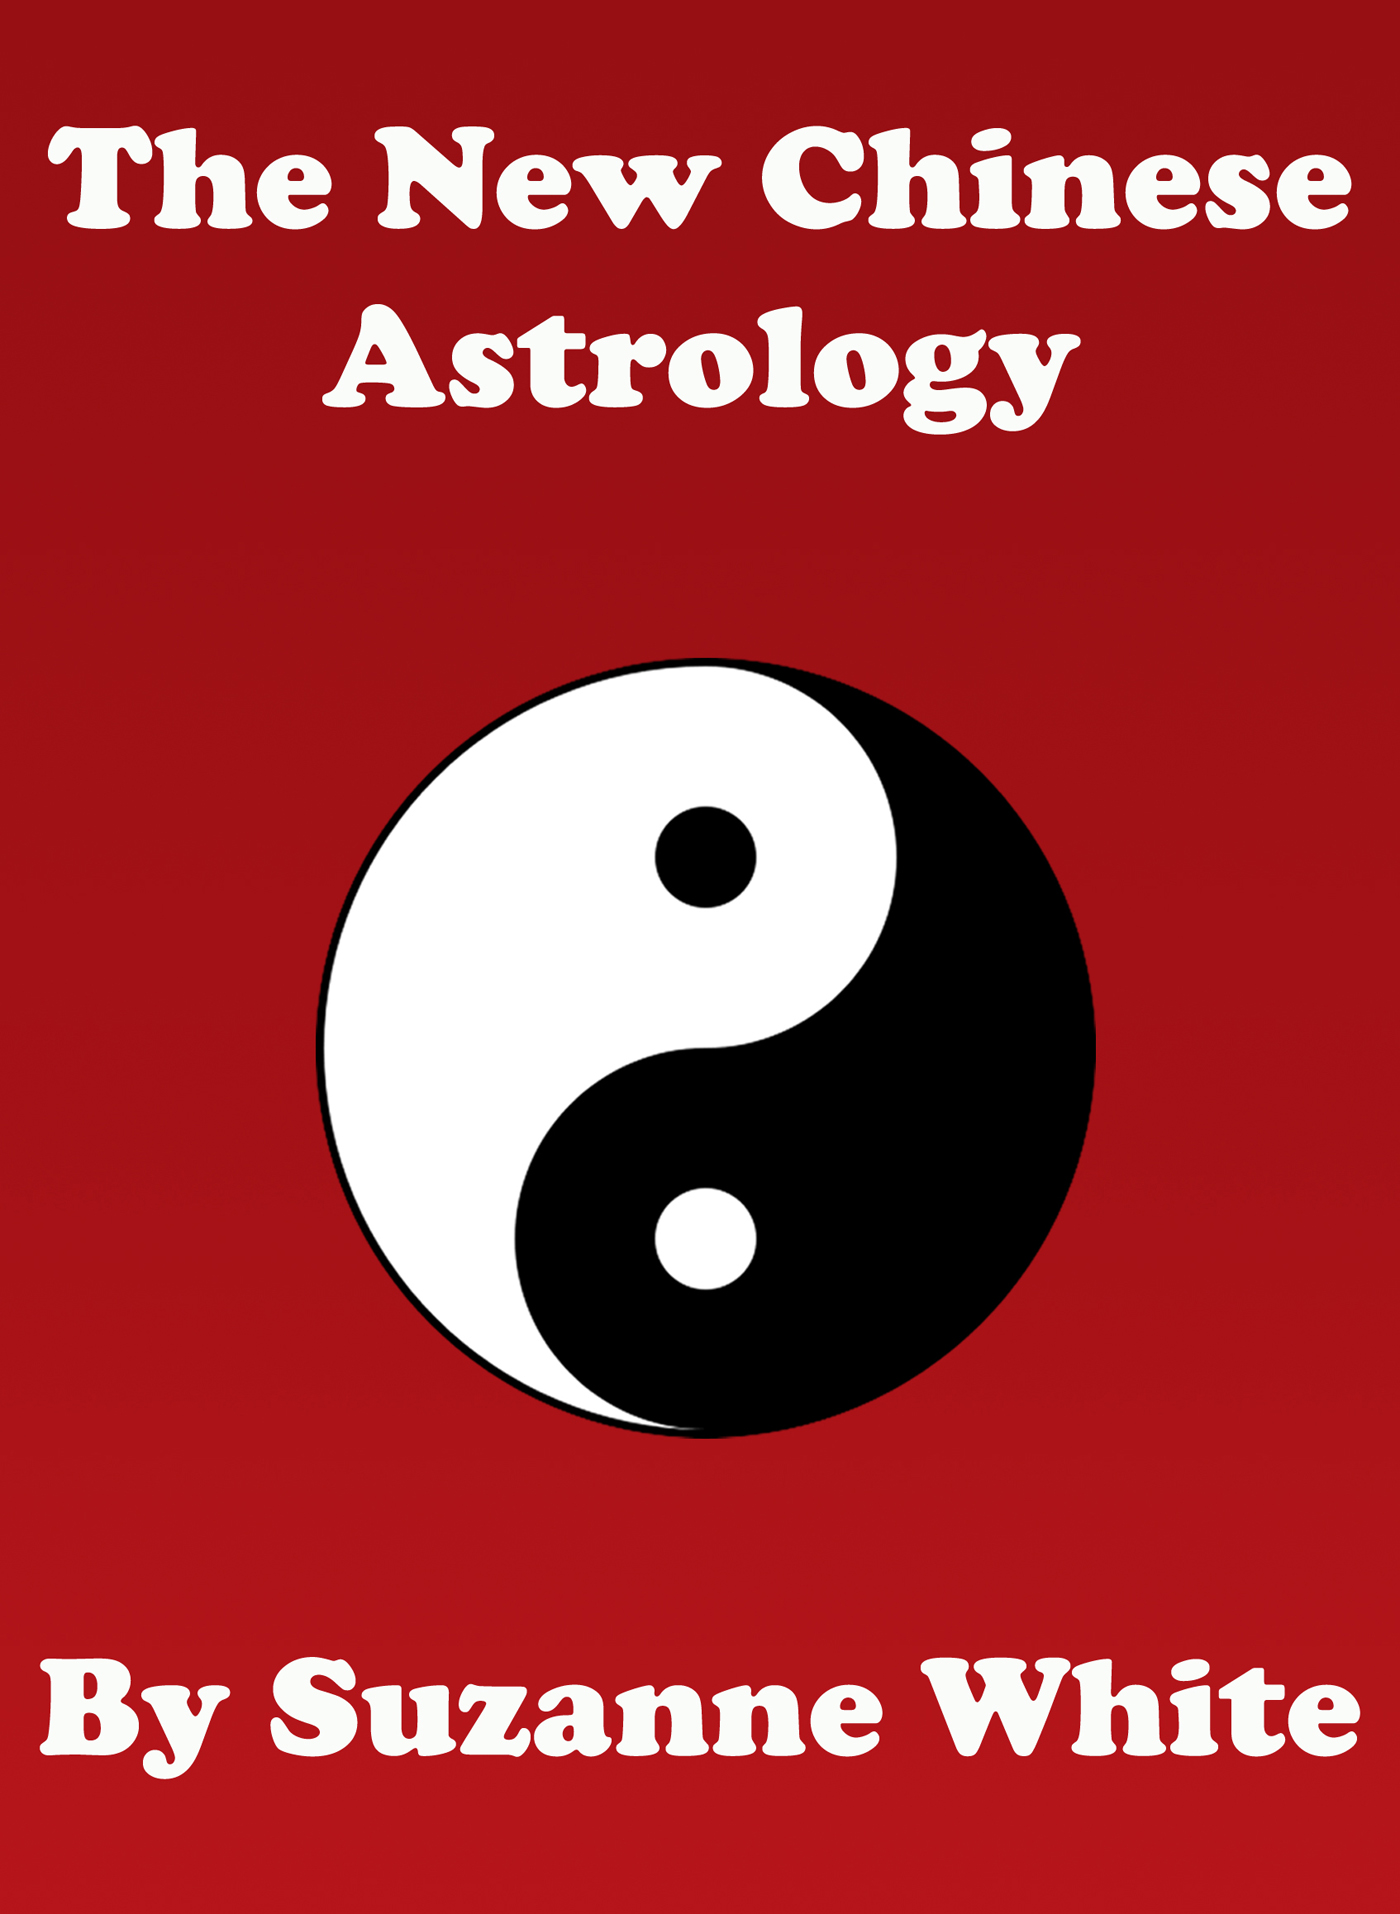 THE NEW CHINESE ASTROLOGY By: Suzanne White